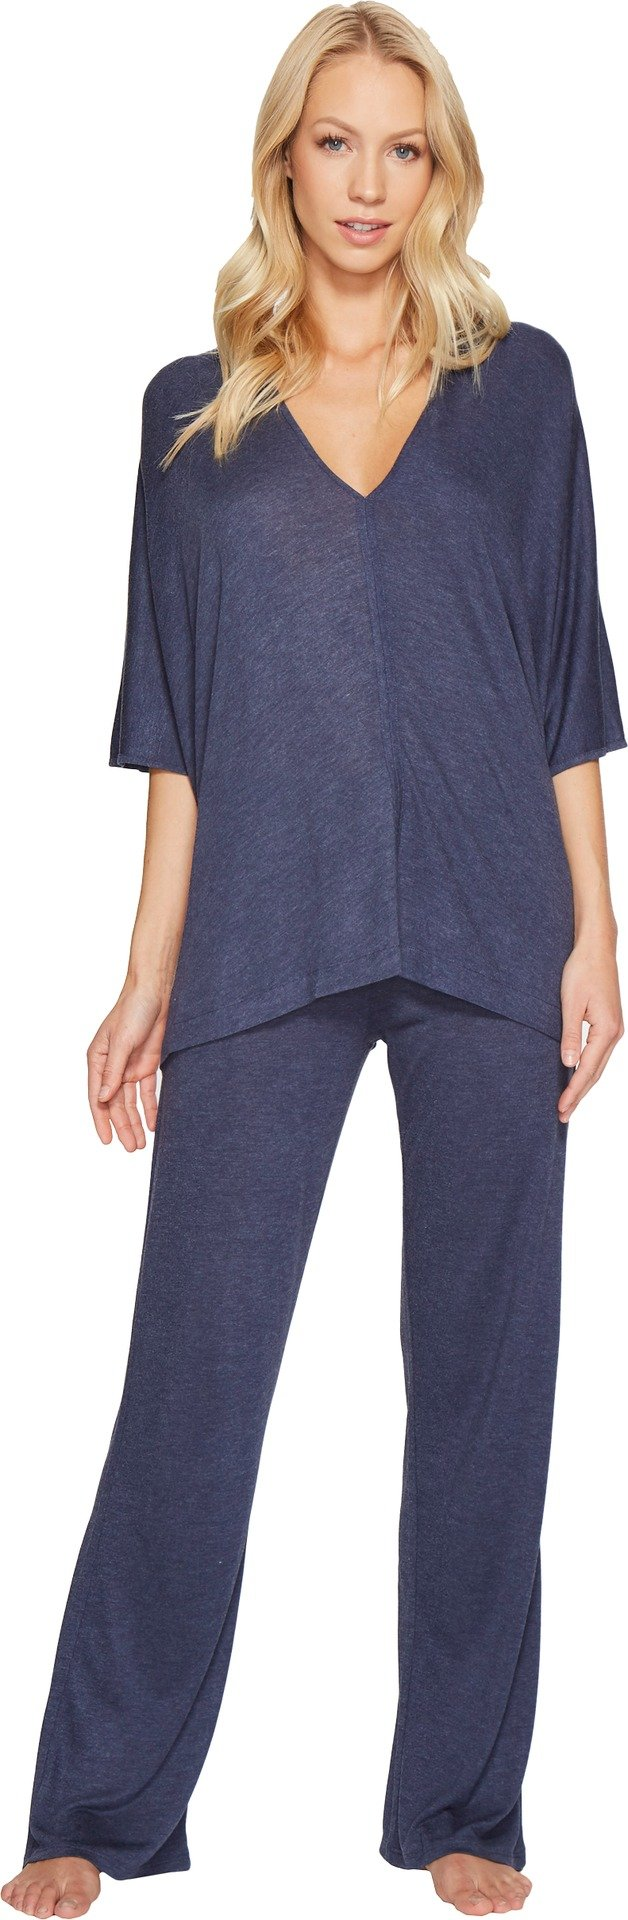 Natori Women's Shangri-La Caftan PJ Heather Night Blue Womens Small / 6-8